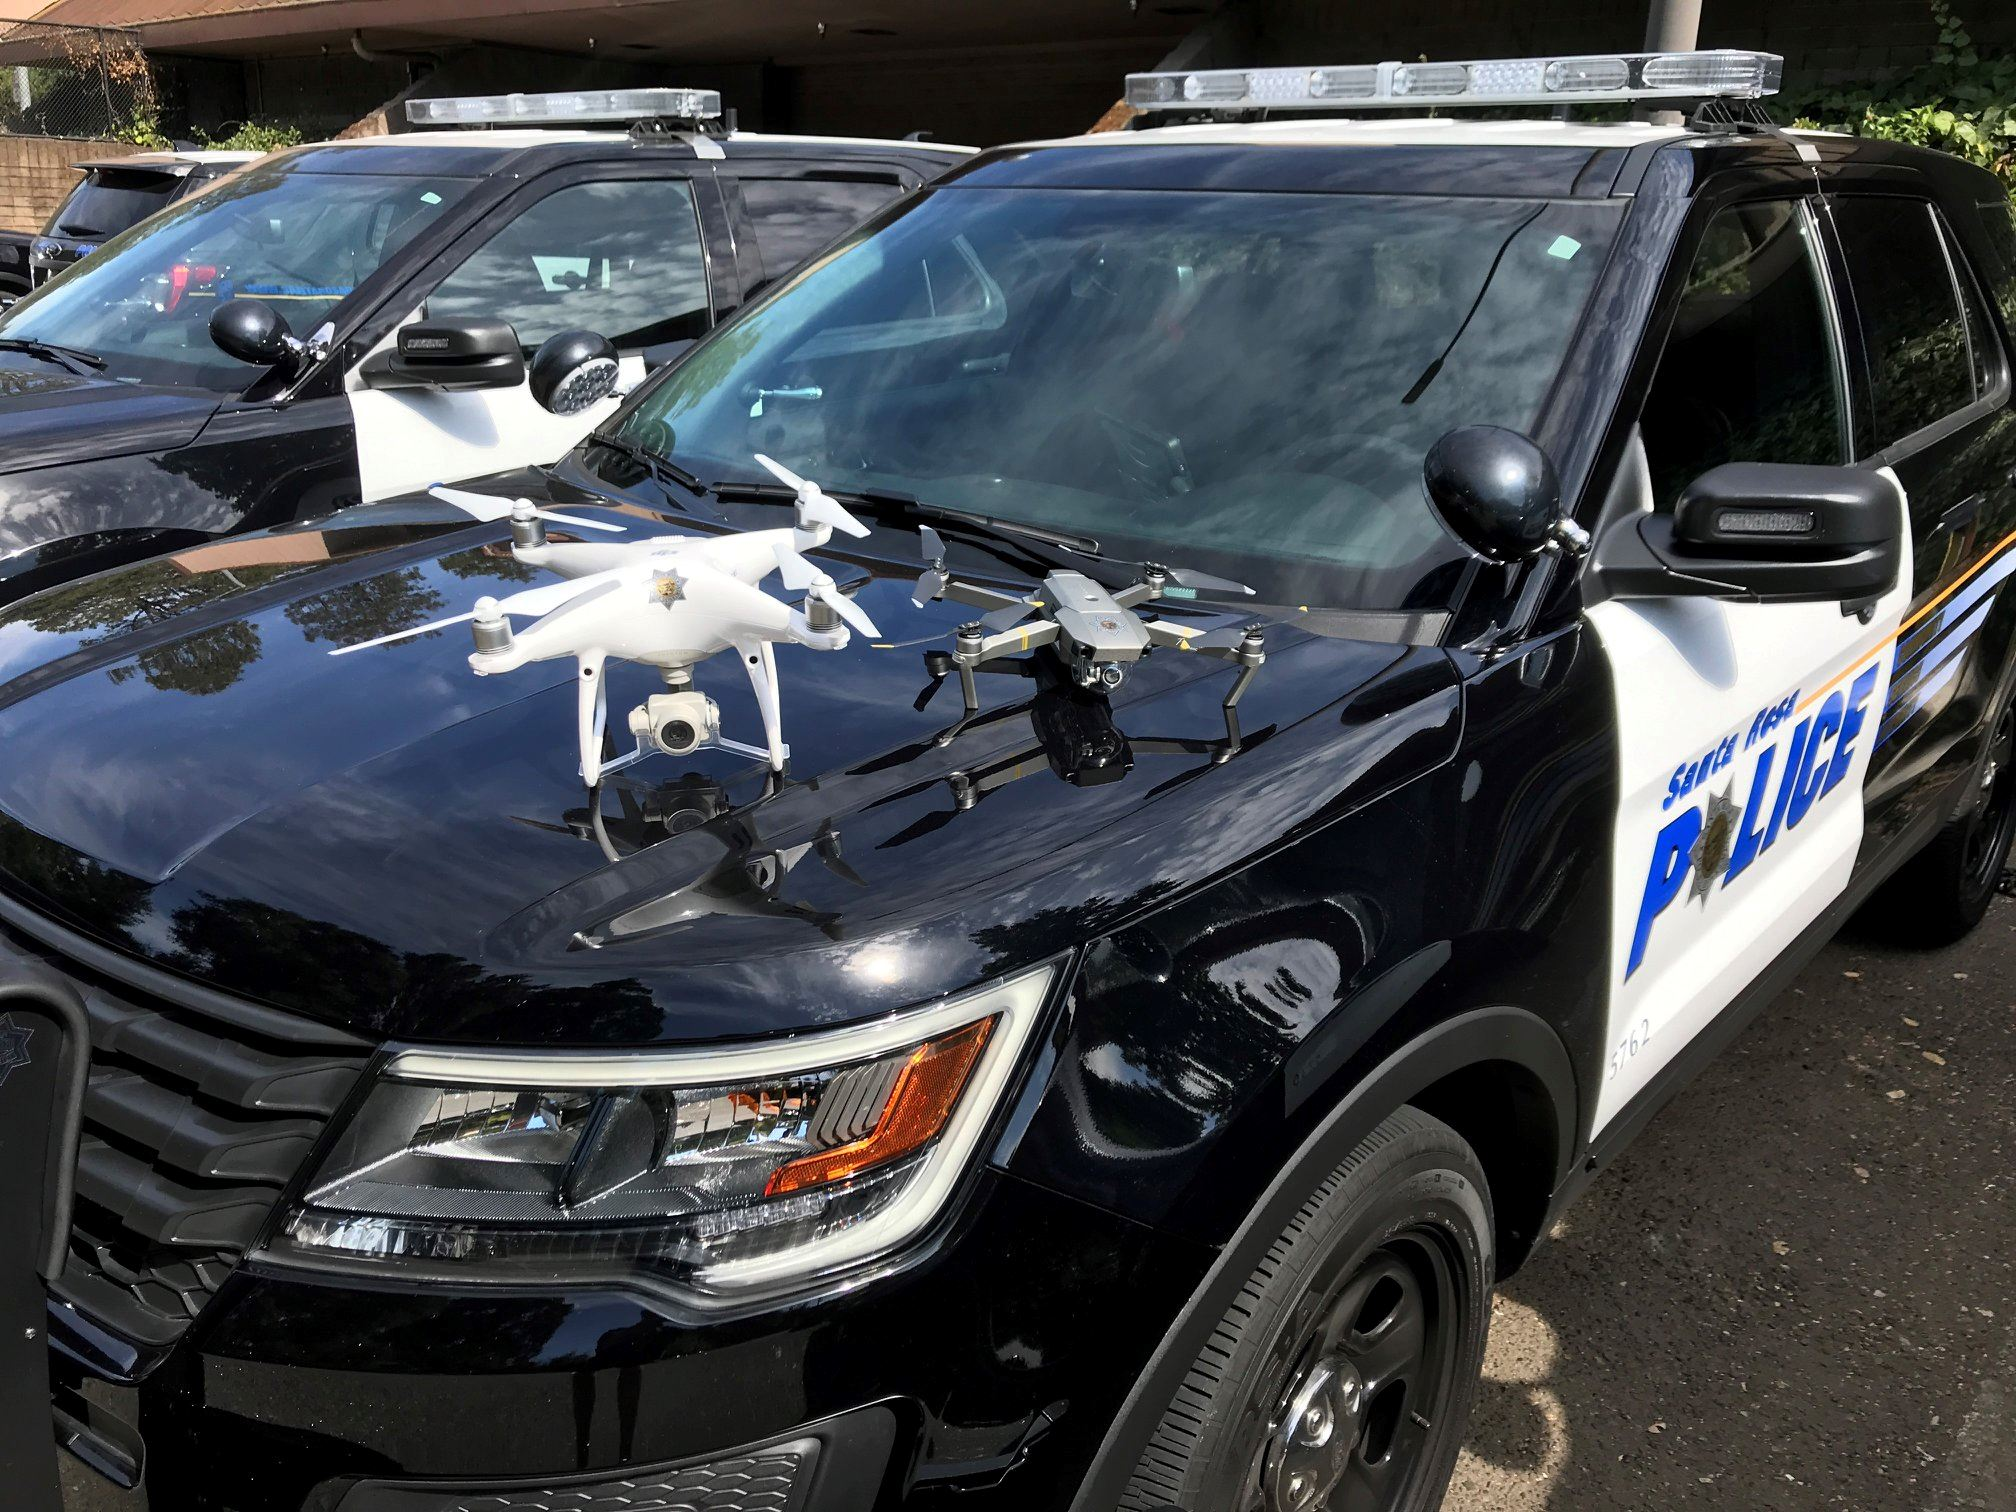 Photo of drones on patrol vehicle hood